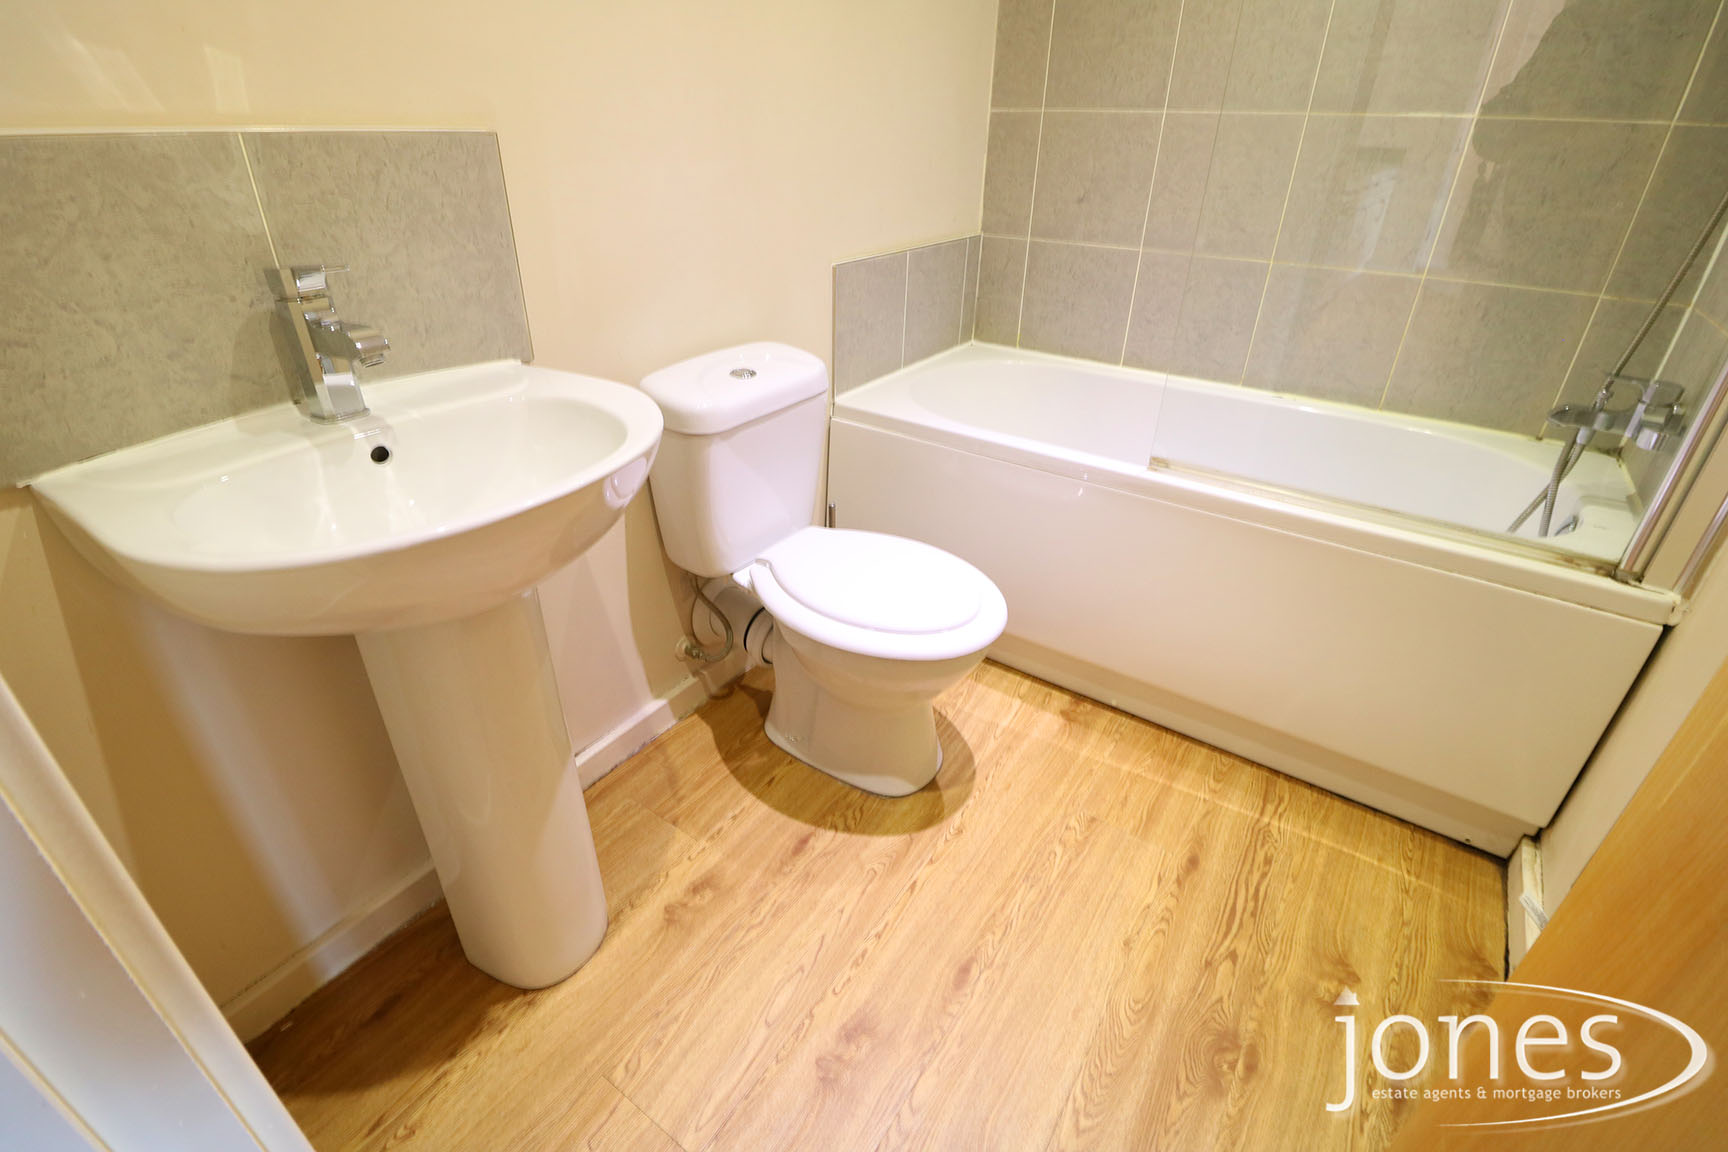 Home for Sale Let - Photo 08 Newport House, Thornaby on Tees, TS17 6SH